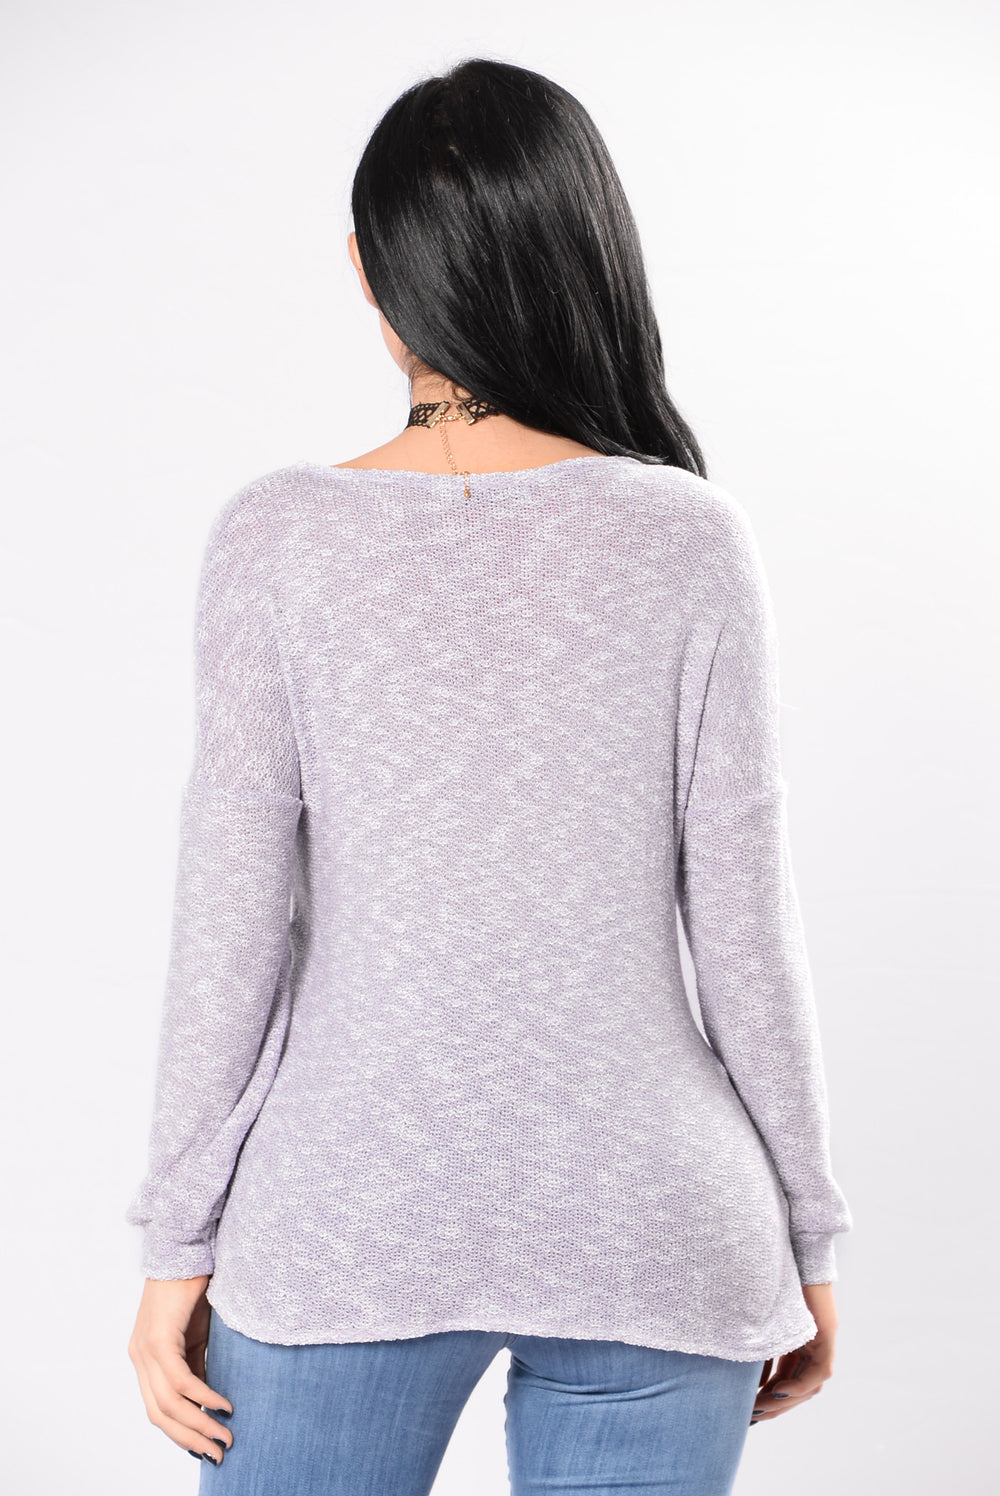 Desperado Top - Lavender